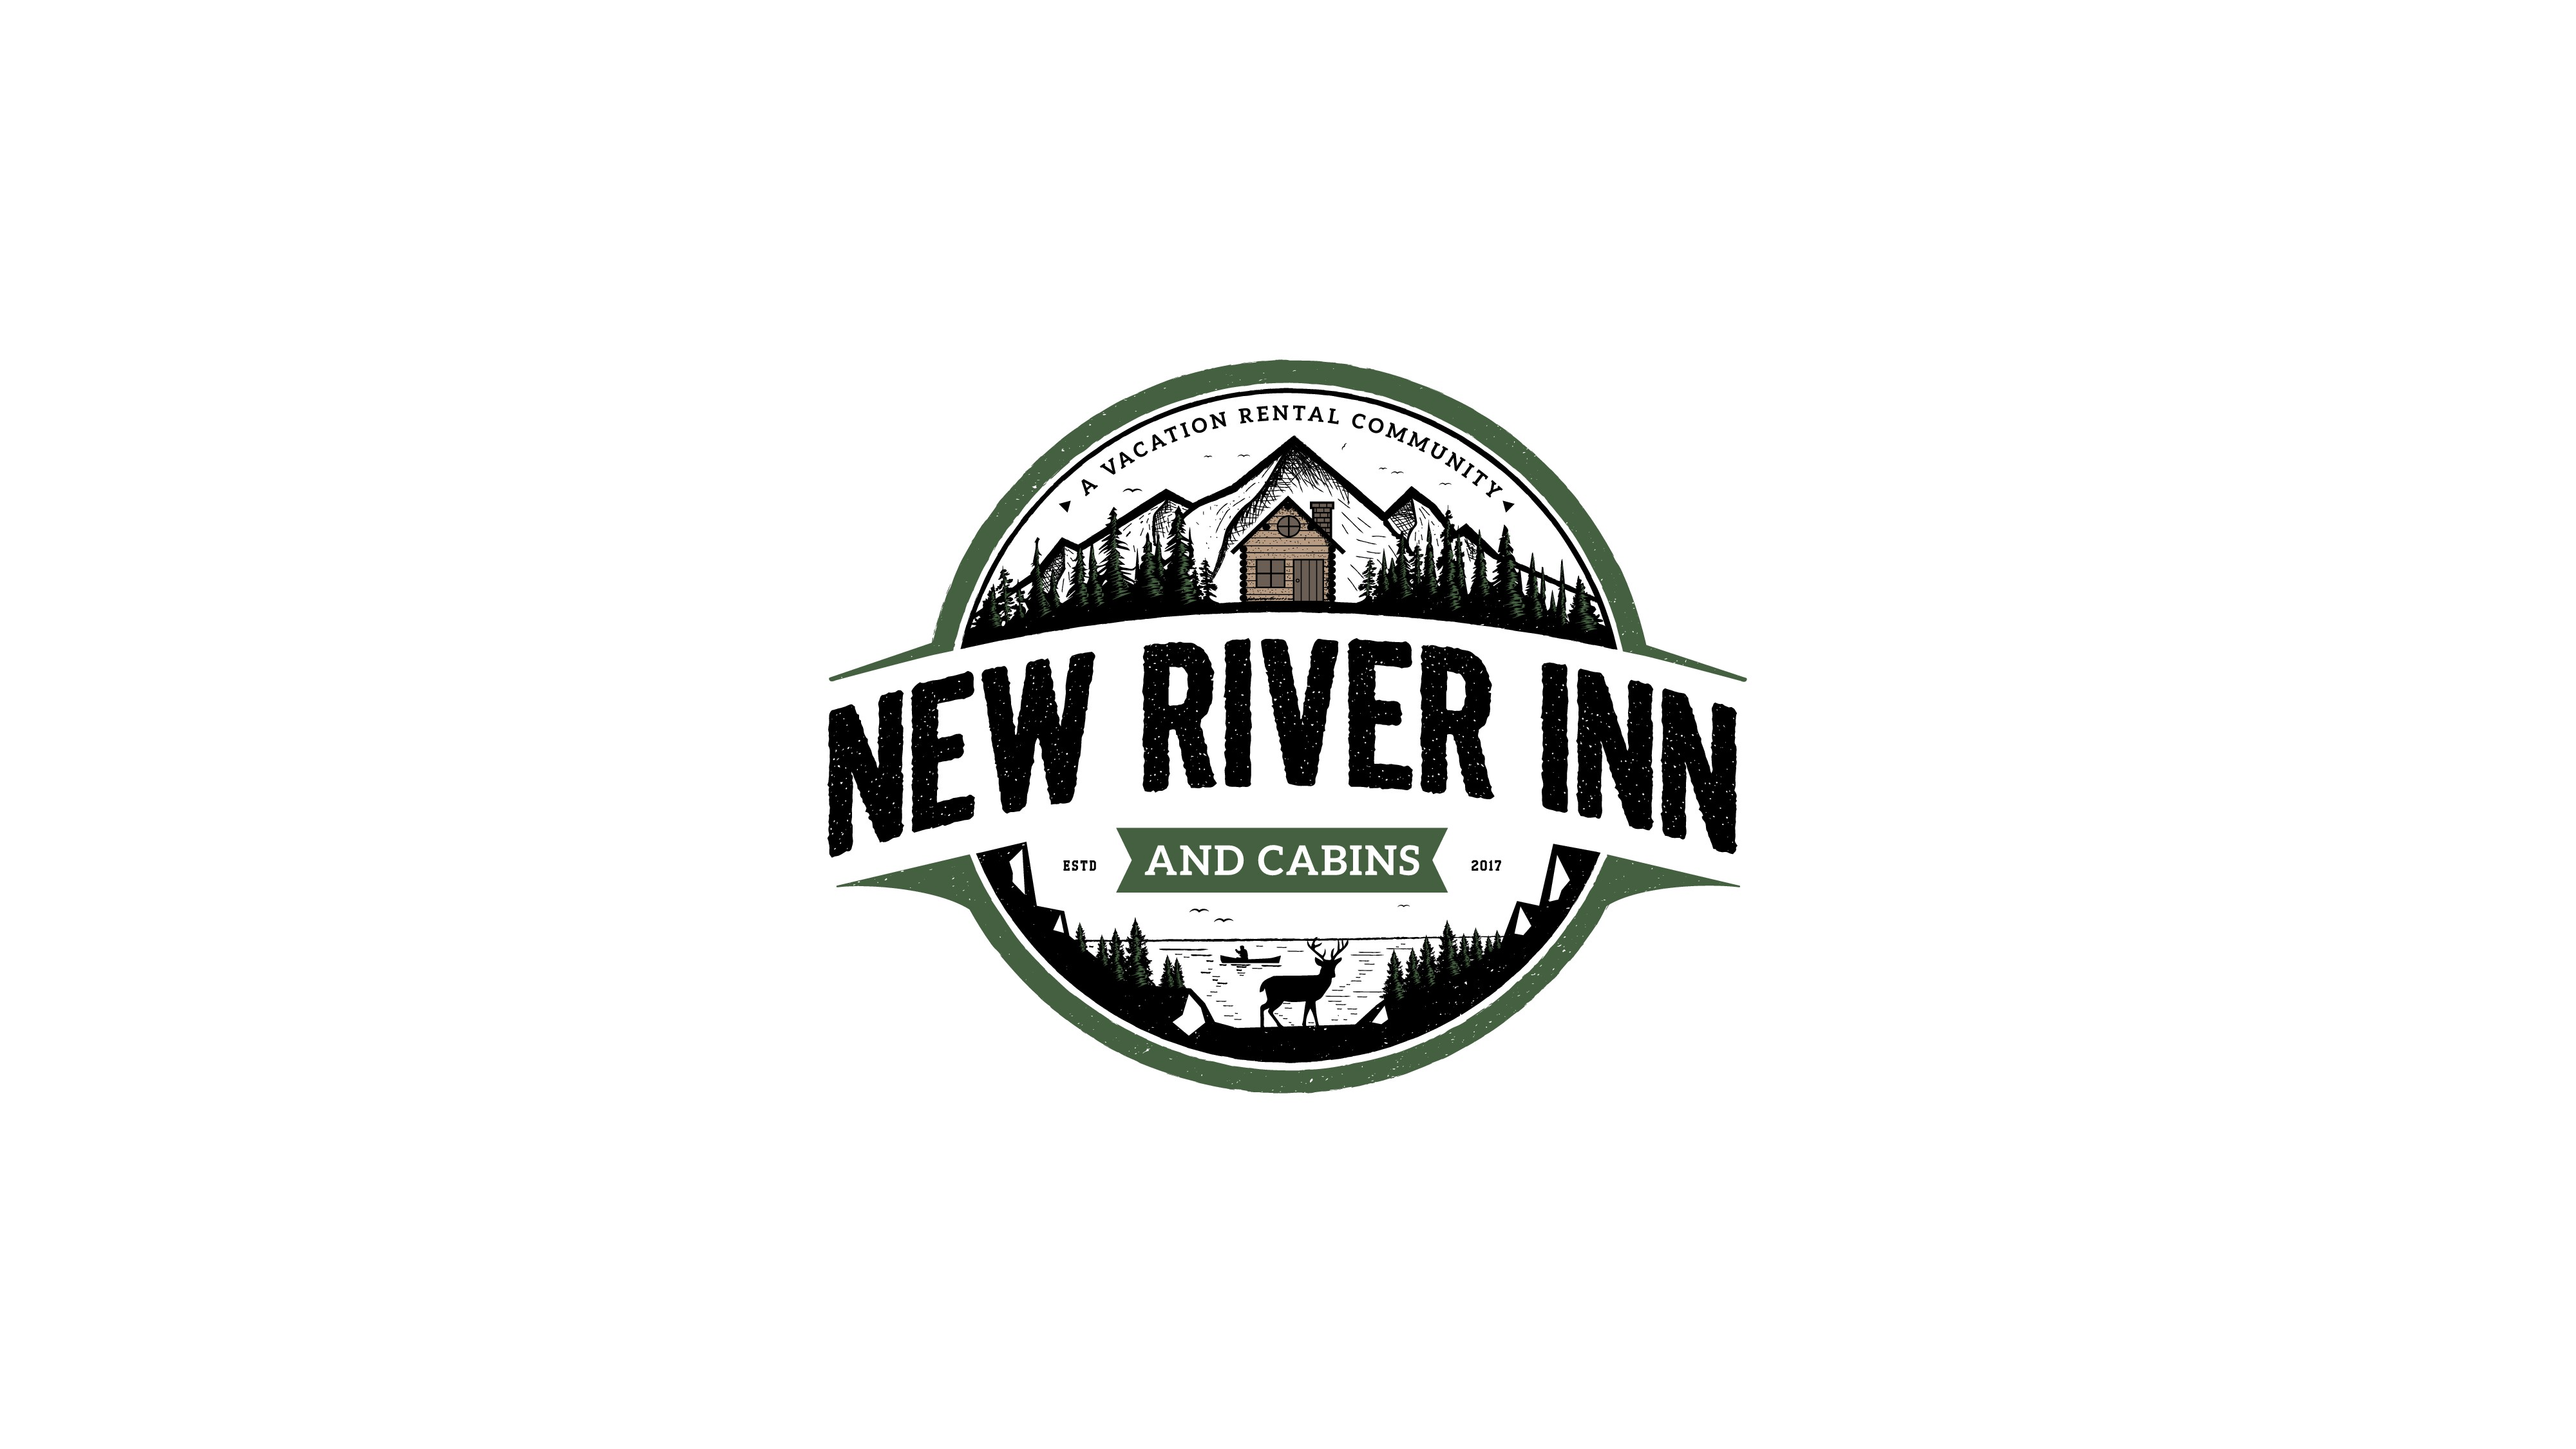 NEW RIVER INN NEEDS A WELCOMING LOGO FOR SHORT TERM MOUNTAIN VACATIONERS